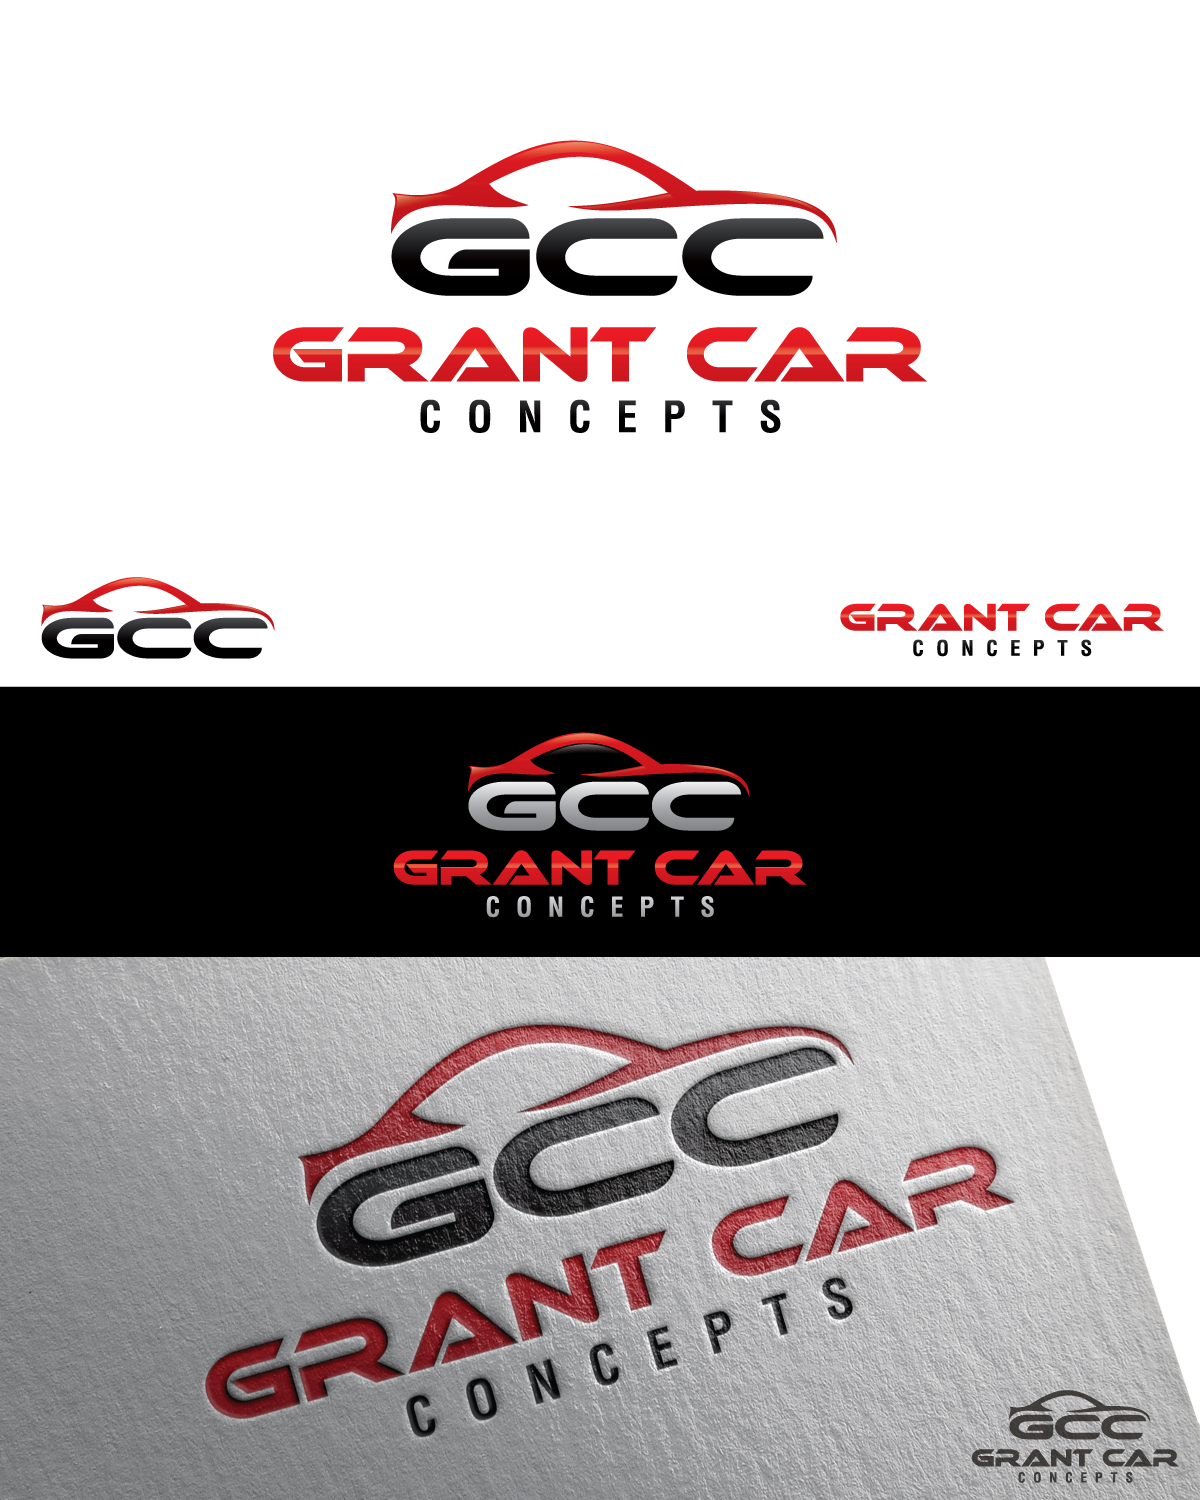 134 Masculine Modern Used Car Logo Designs For Grant Car